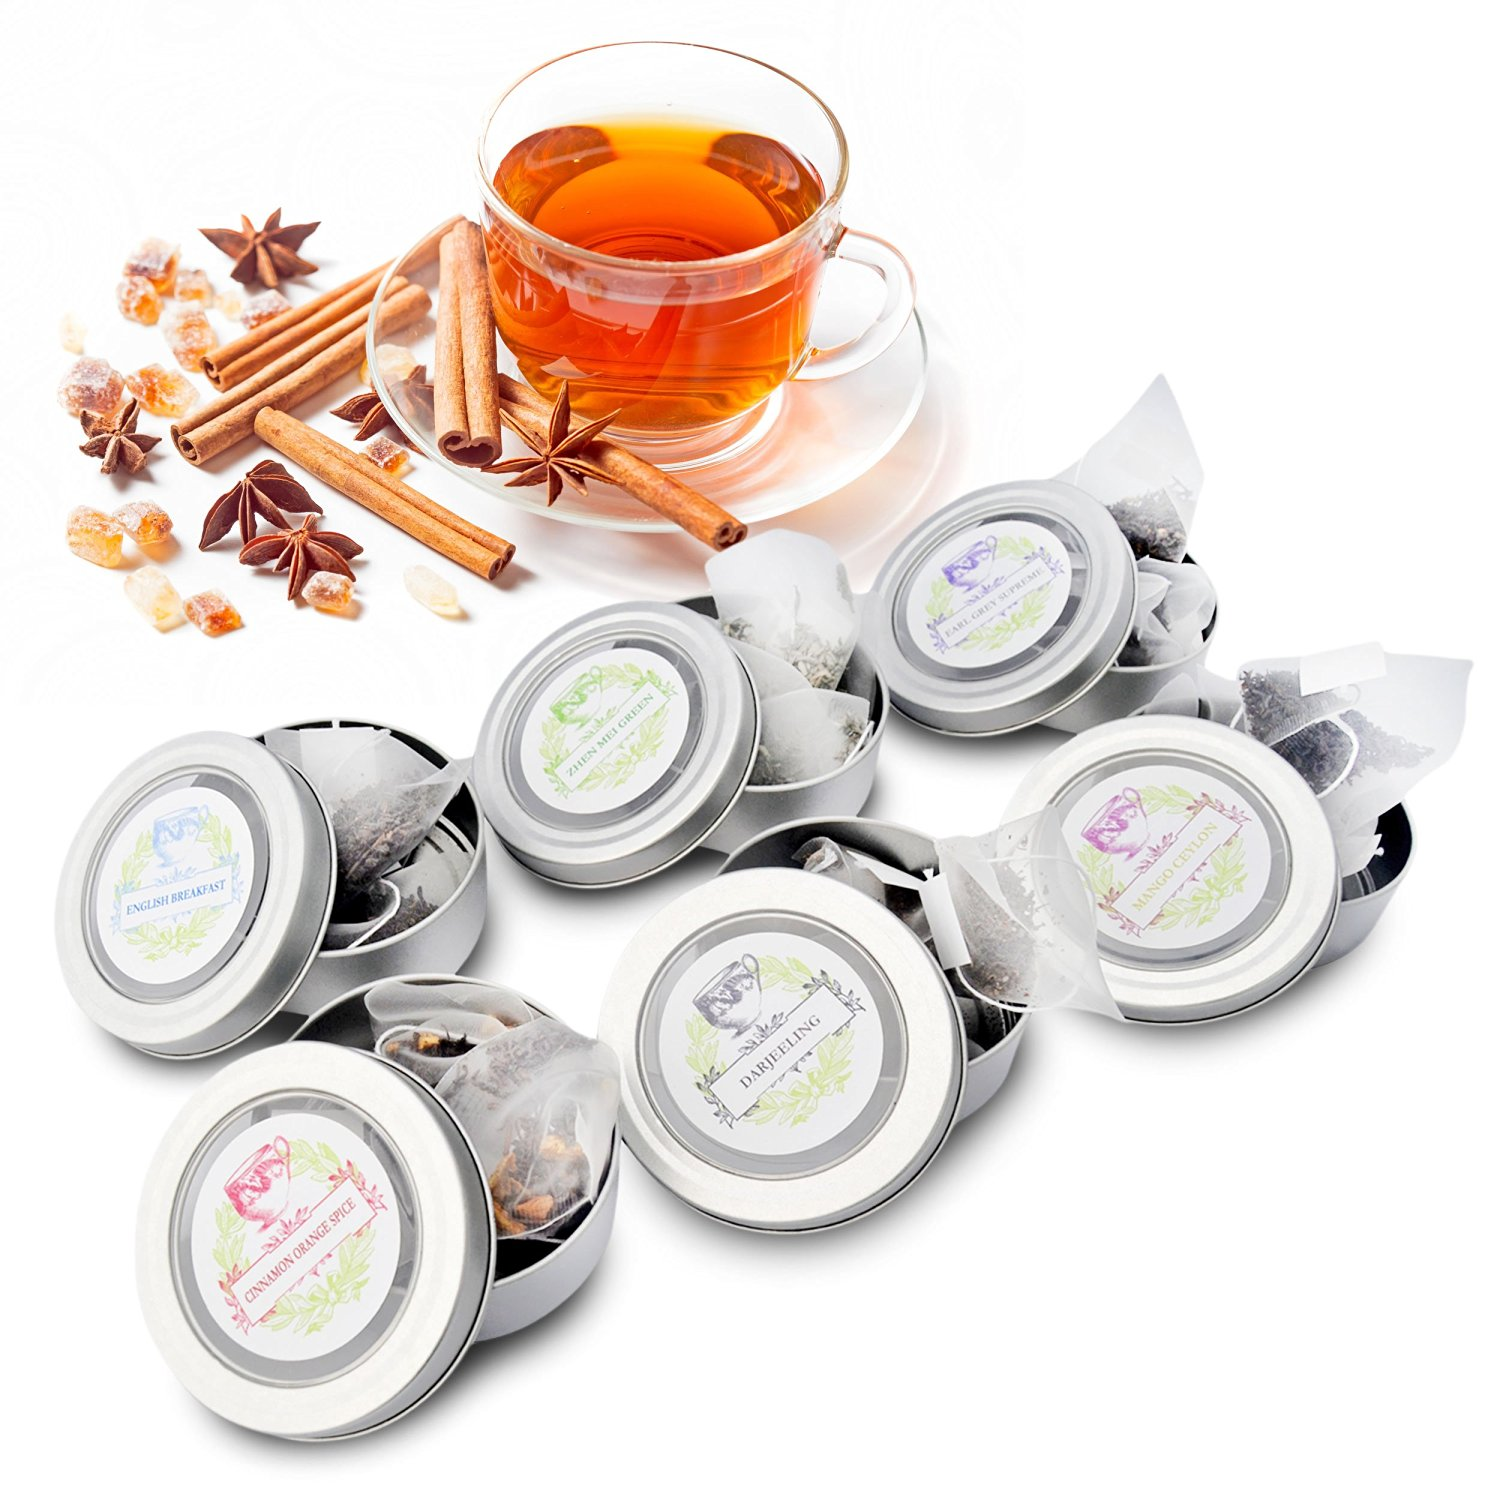 Flourish and Thrive Tea Gift Set, Loose Leaf in Wooden Box